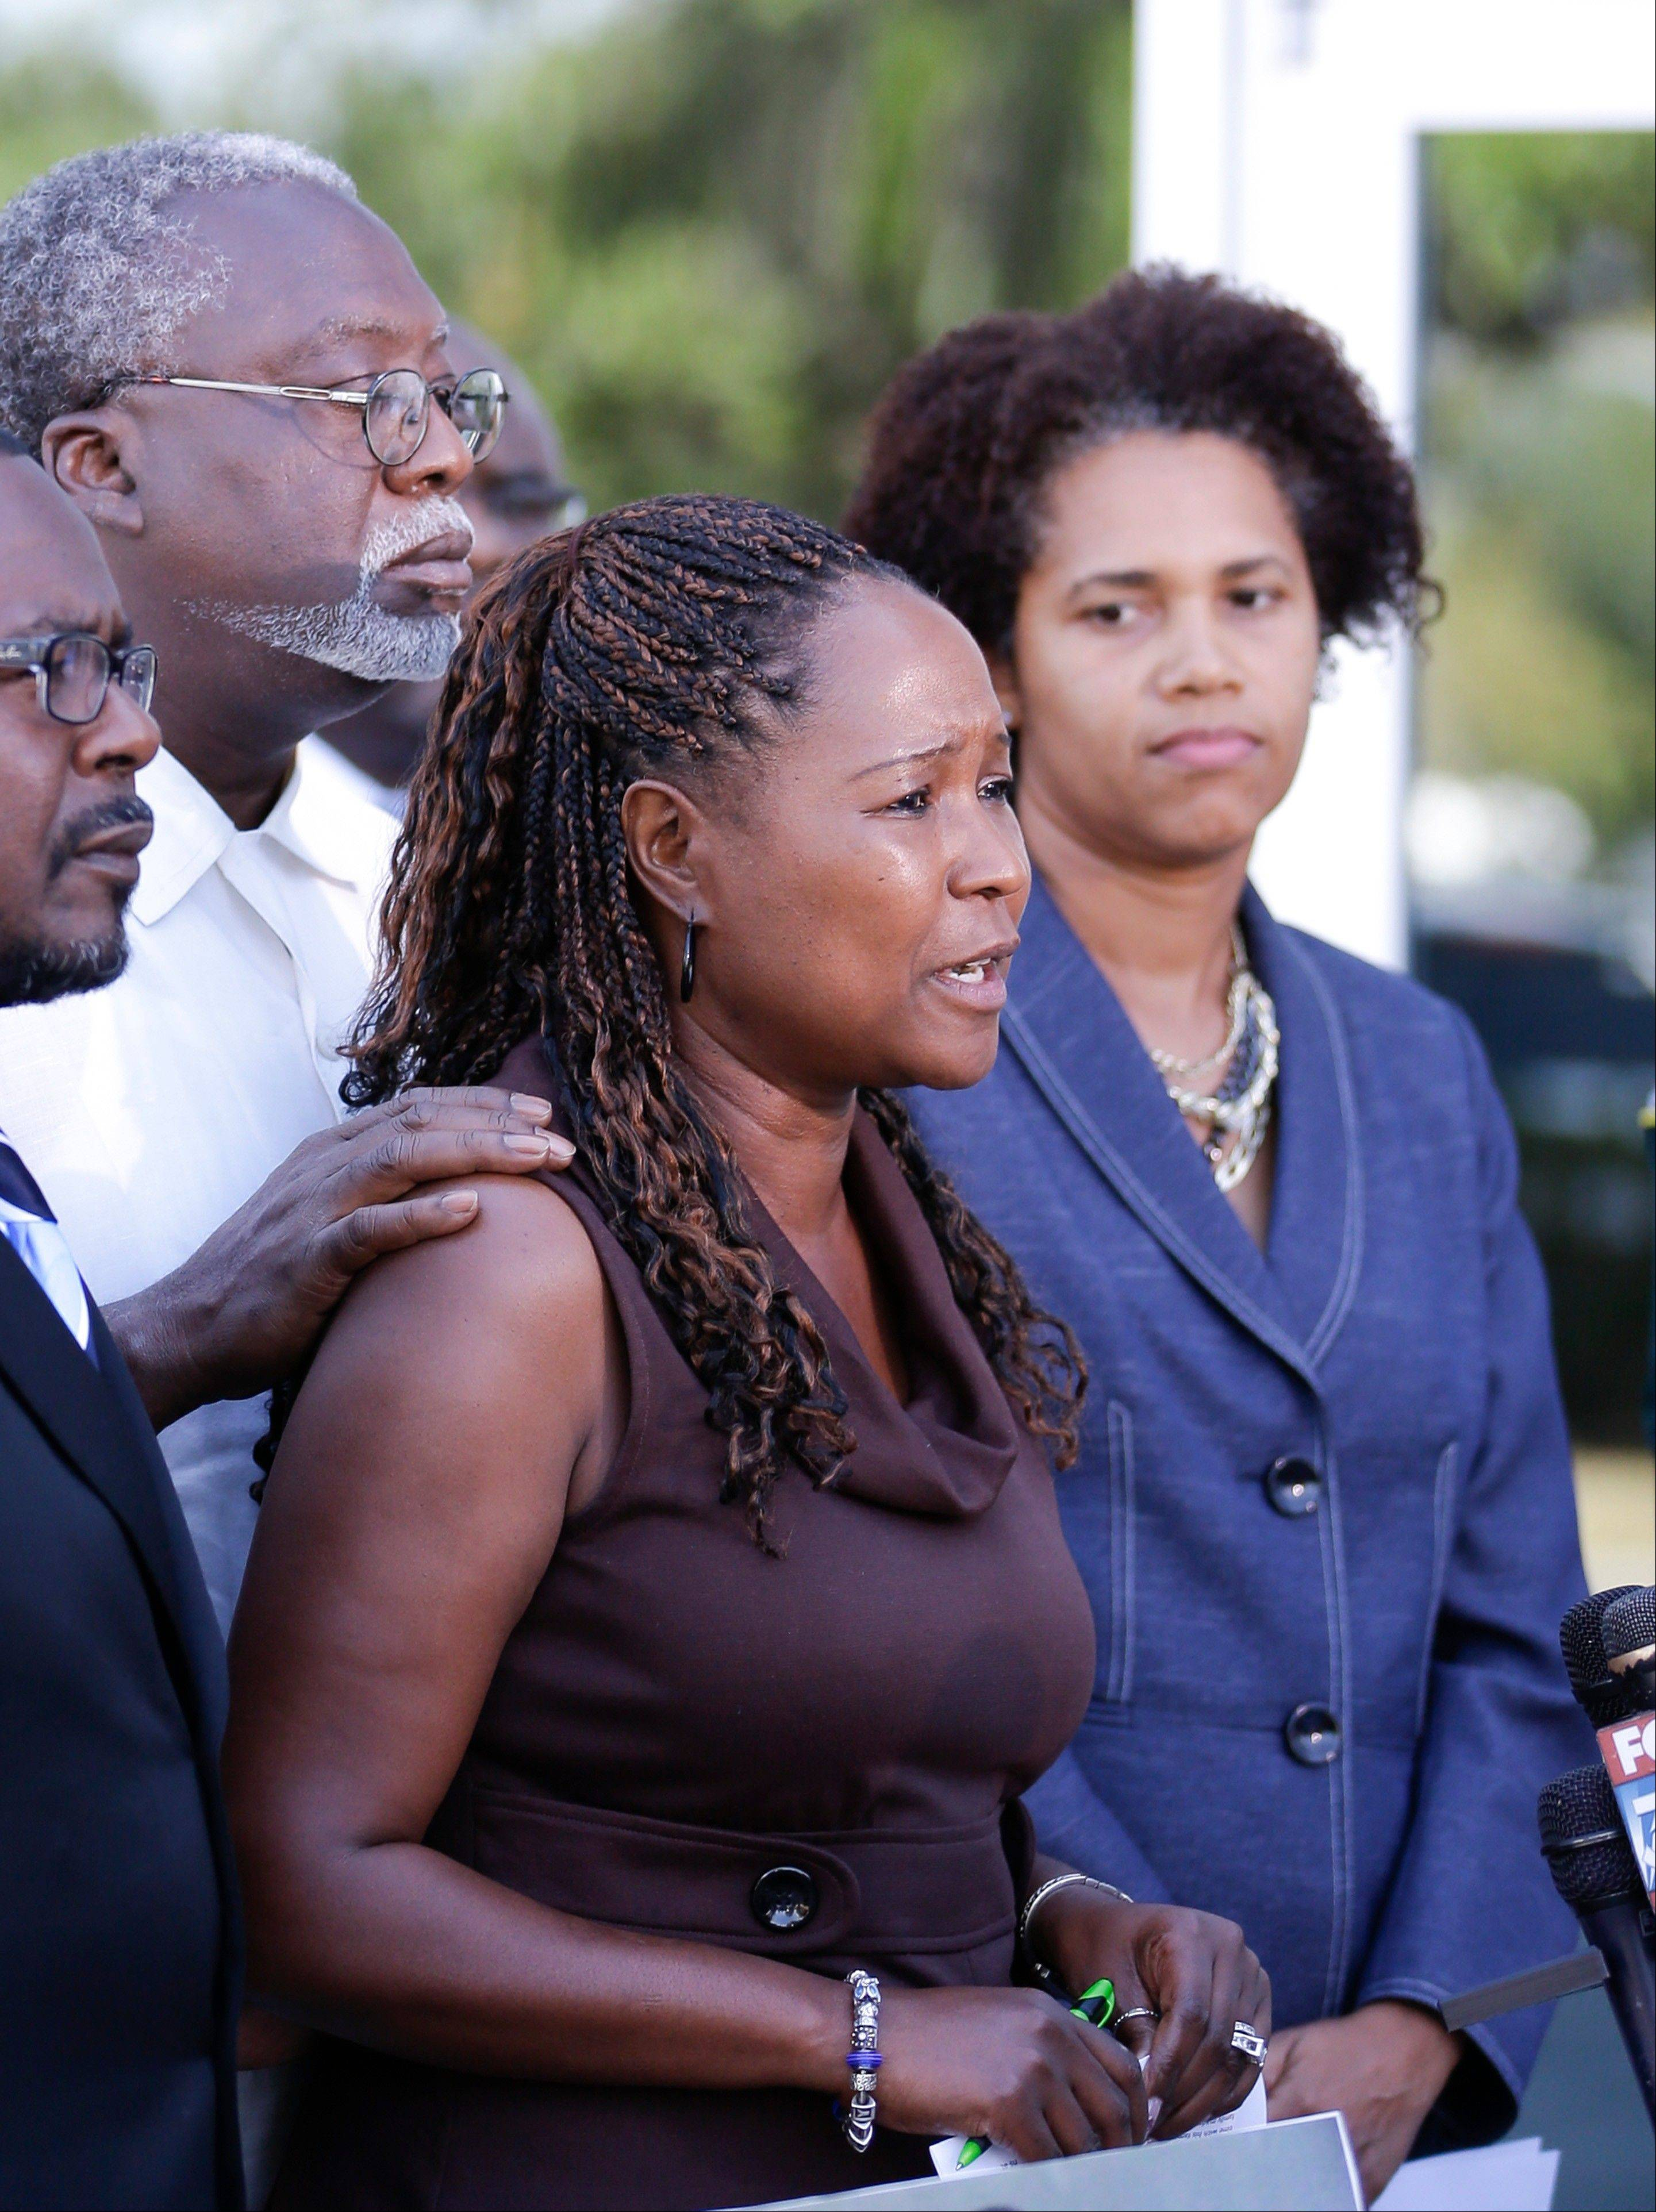 Lillie Danzy, center, mother of escaped inmate Charles Walker, with her husband Jeff Danzy, to her left, and attorney Rhonda Henderson, right, listen as she makes a plea Saturday for her son to turn himself in to authorities. The two men were later captured.